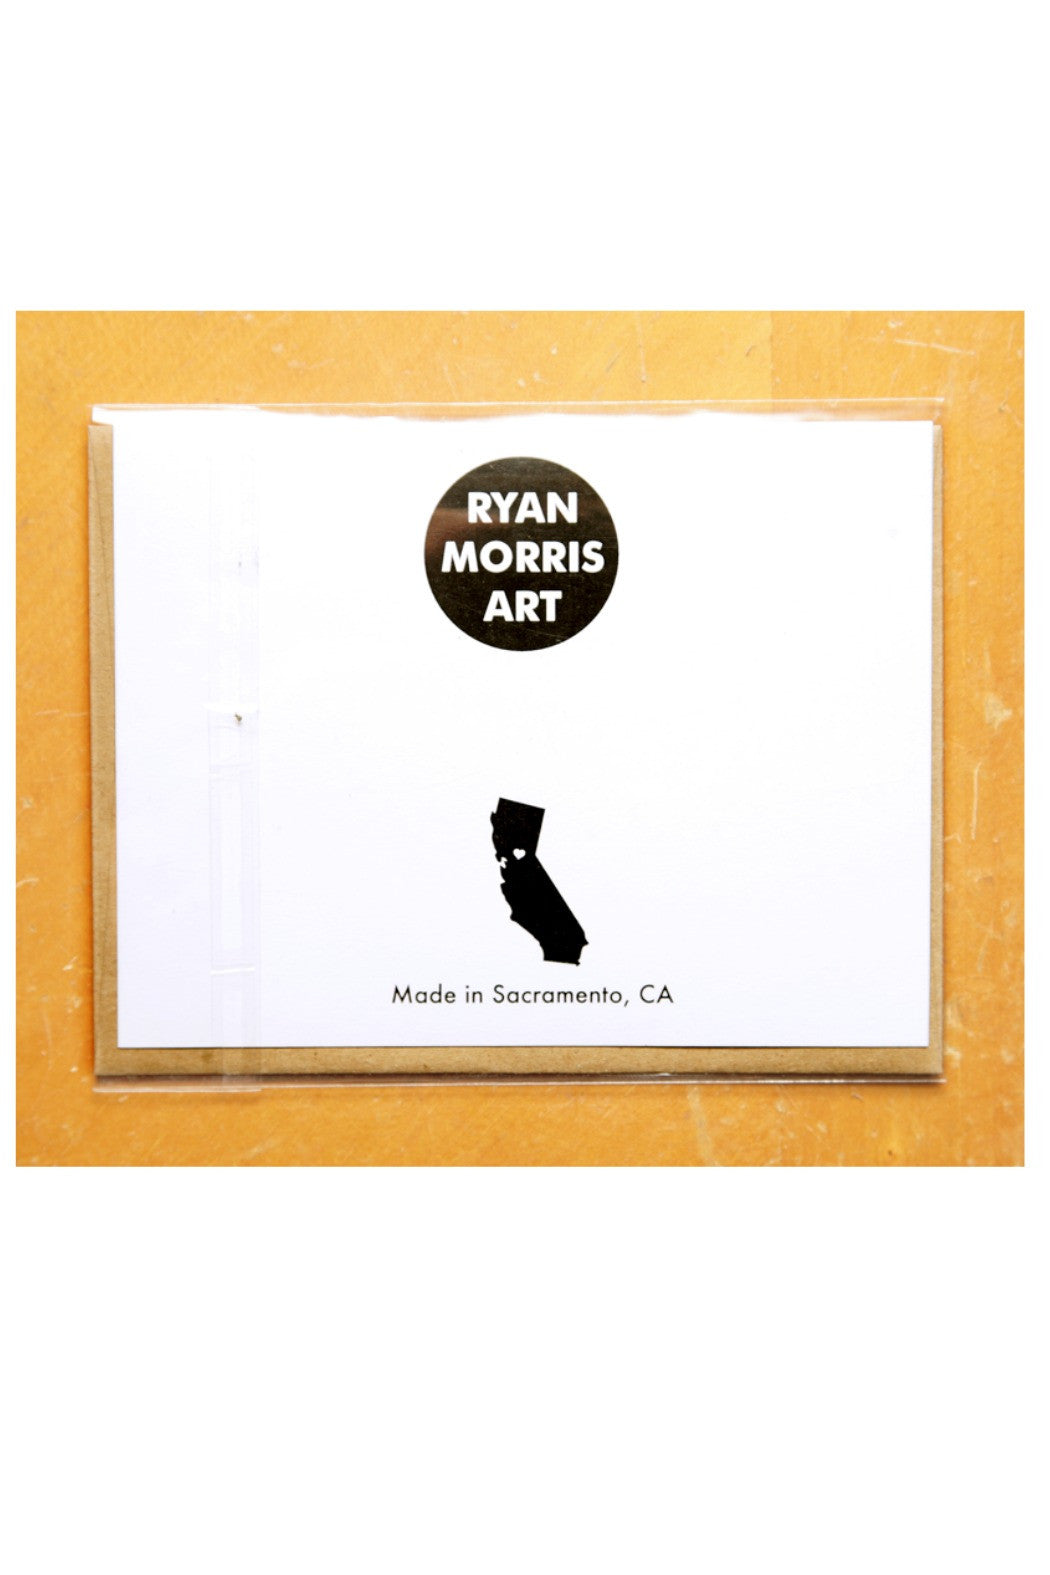 Ryan Morris Art - Have a Killer Birthday - R+D Hipster Emporium | Womens & Mens Clothing - 2